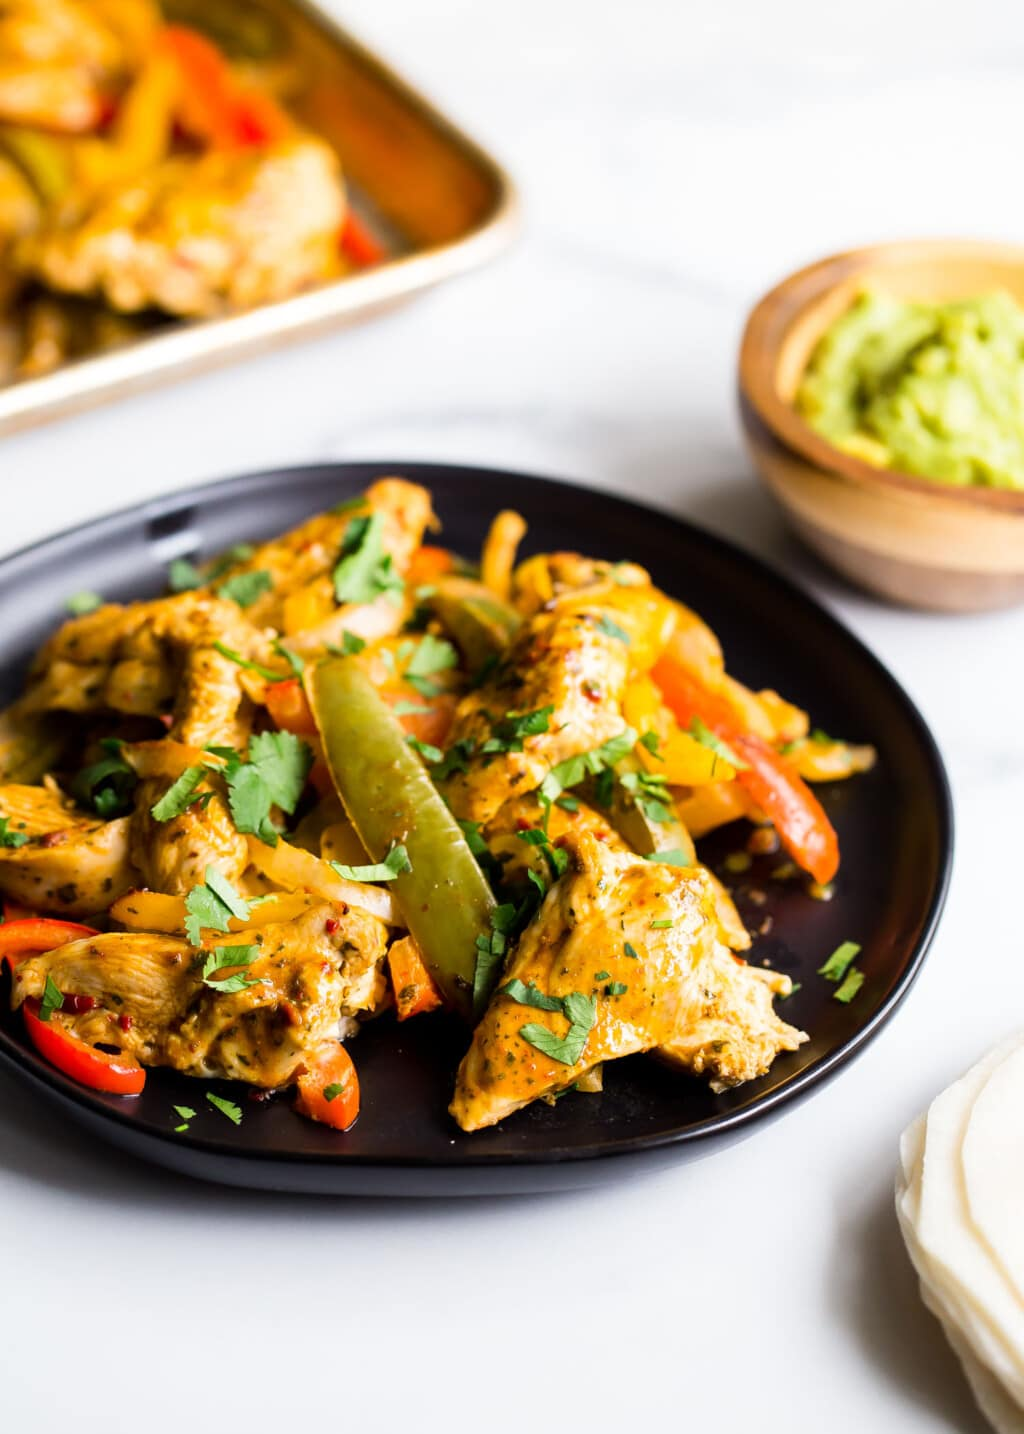 chicken and bell peppers on a black plate